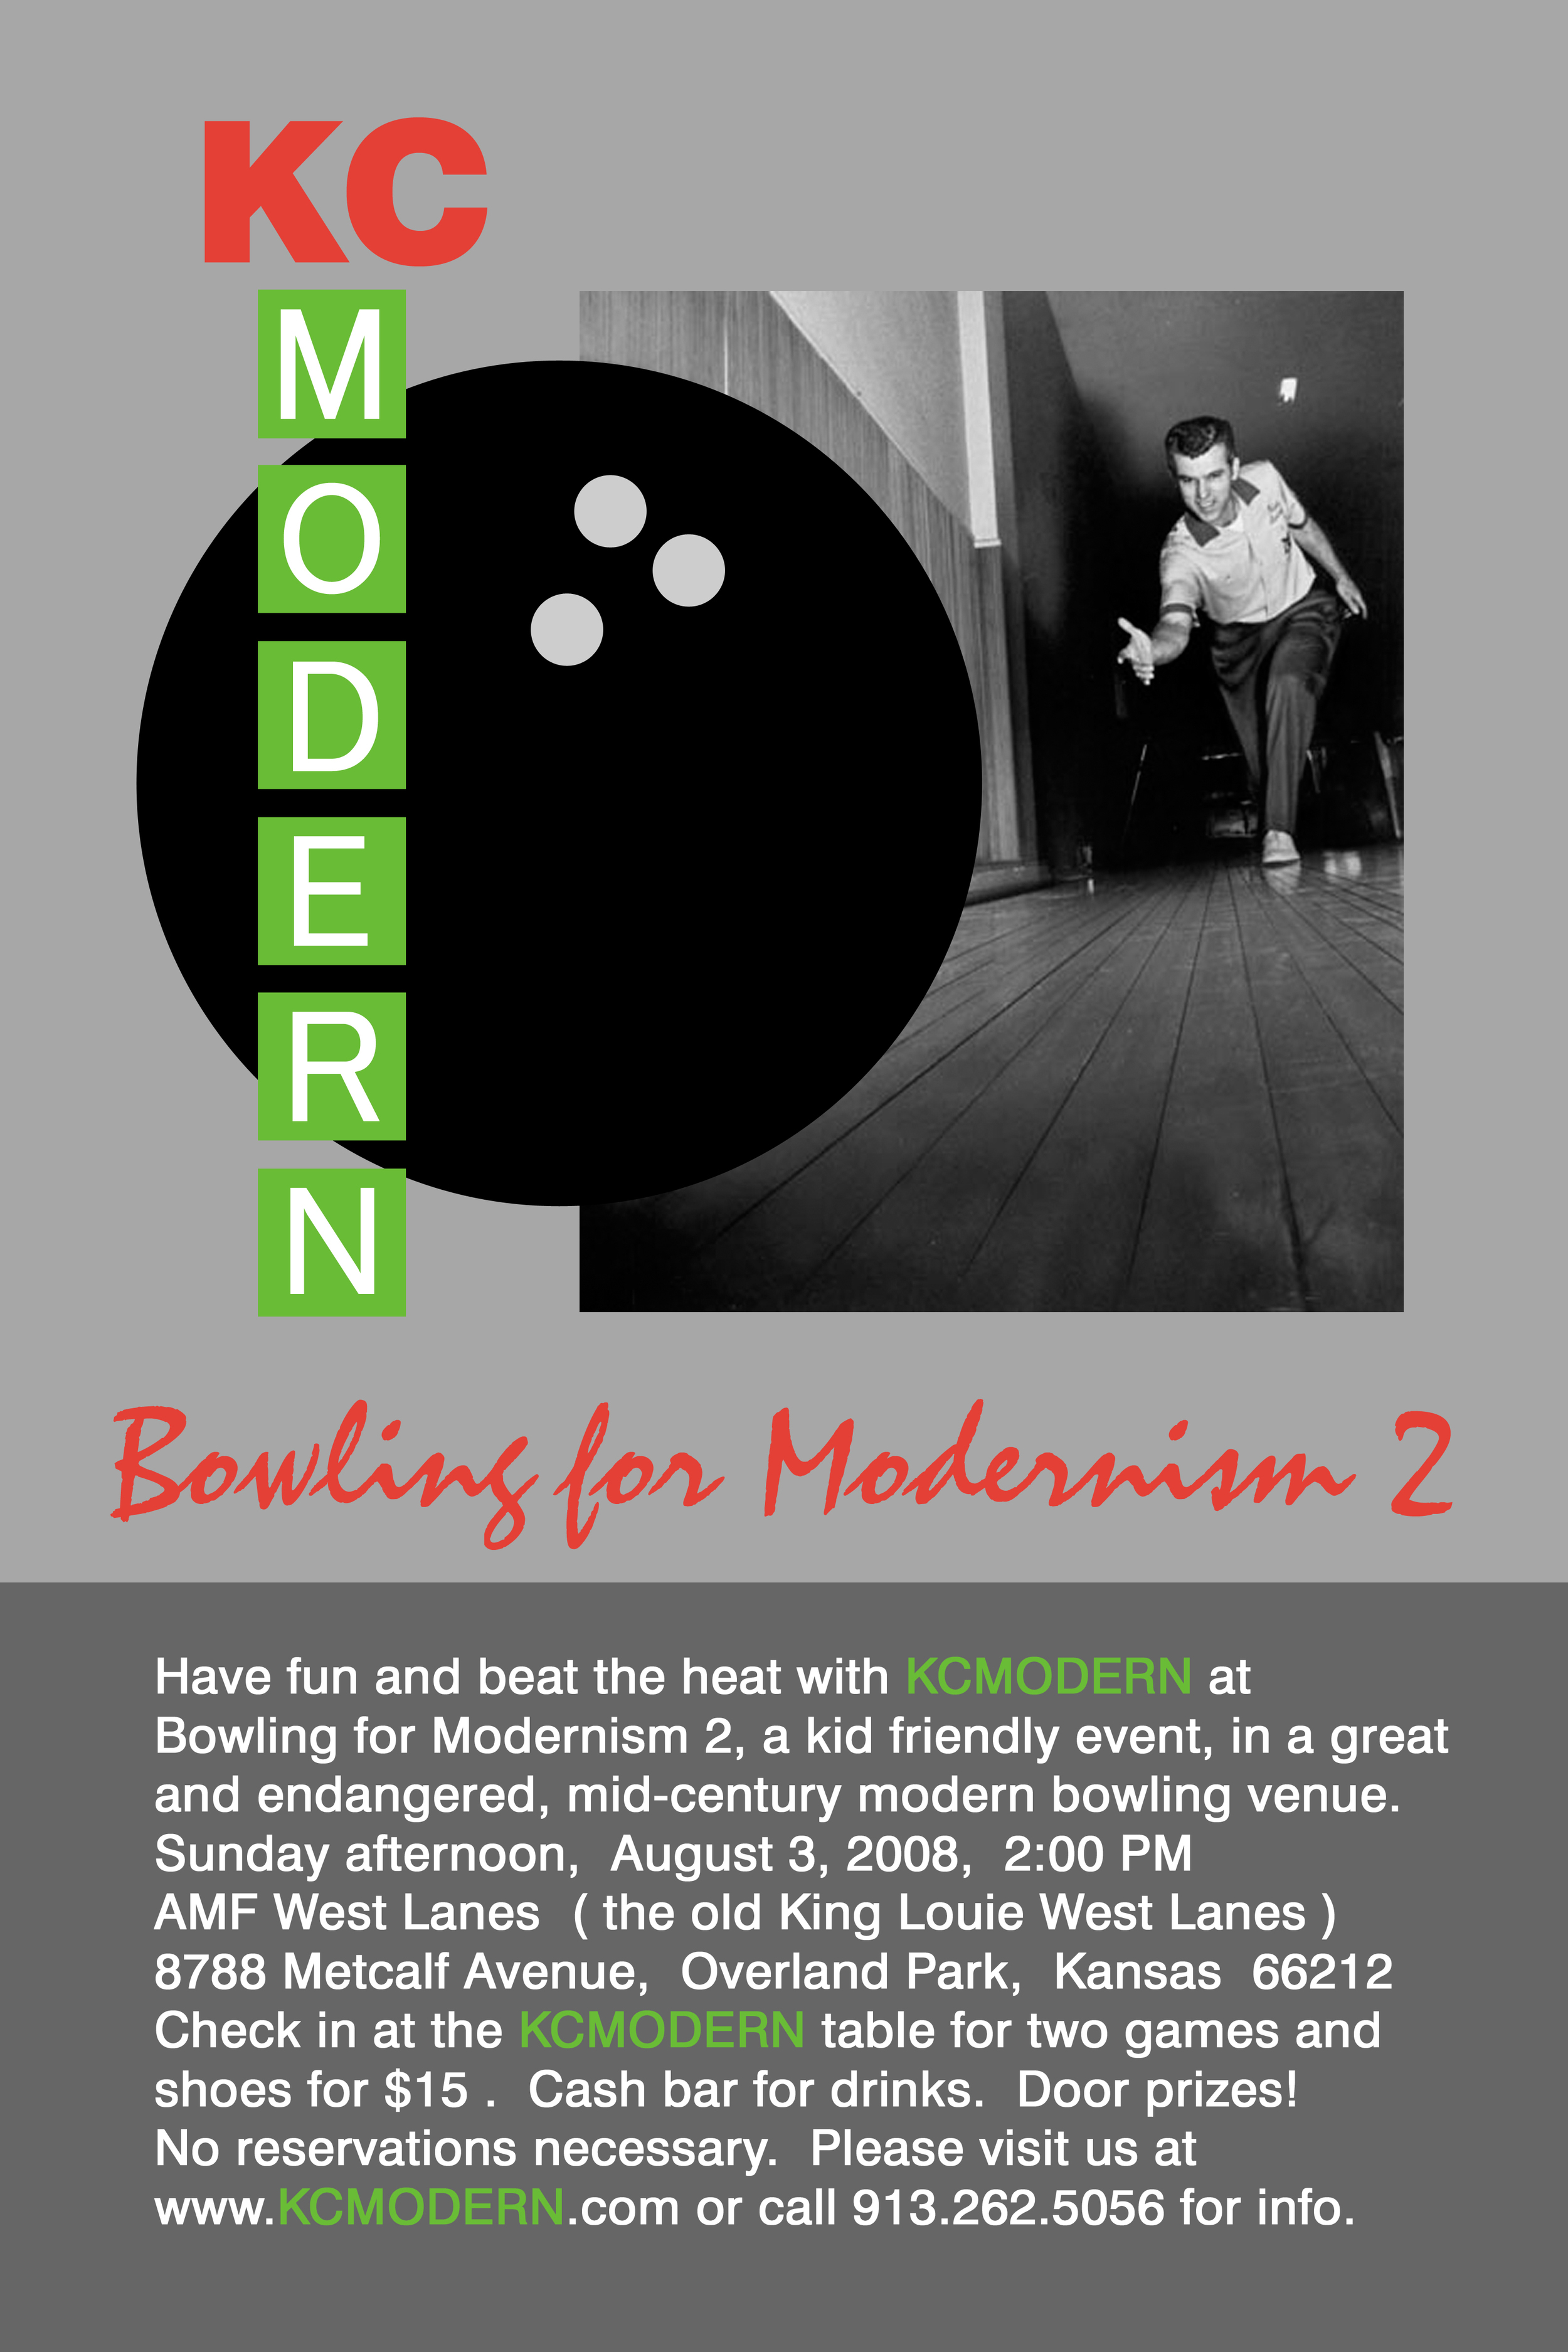 KCmodern Bowling for Modernism 2 Invite